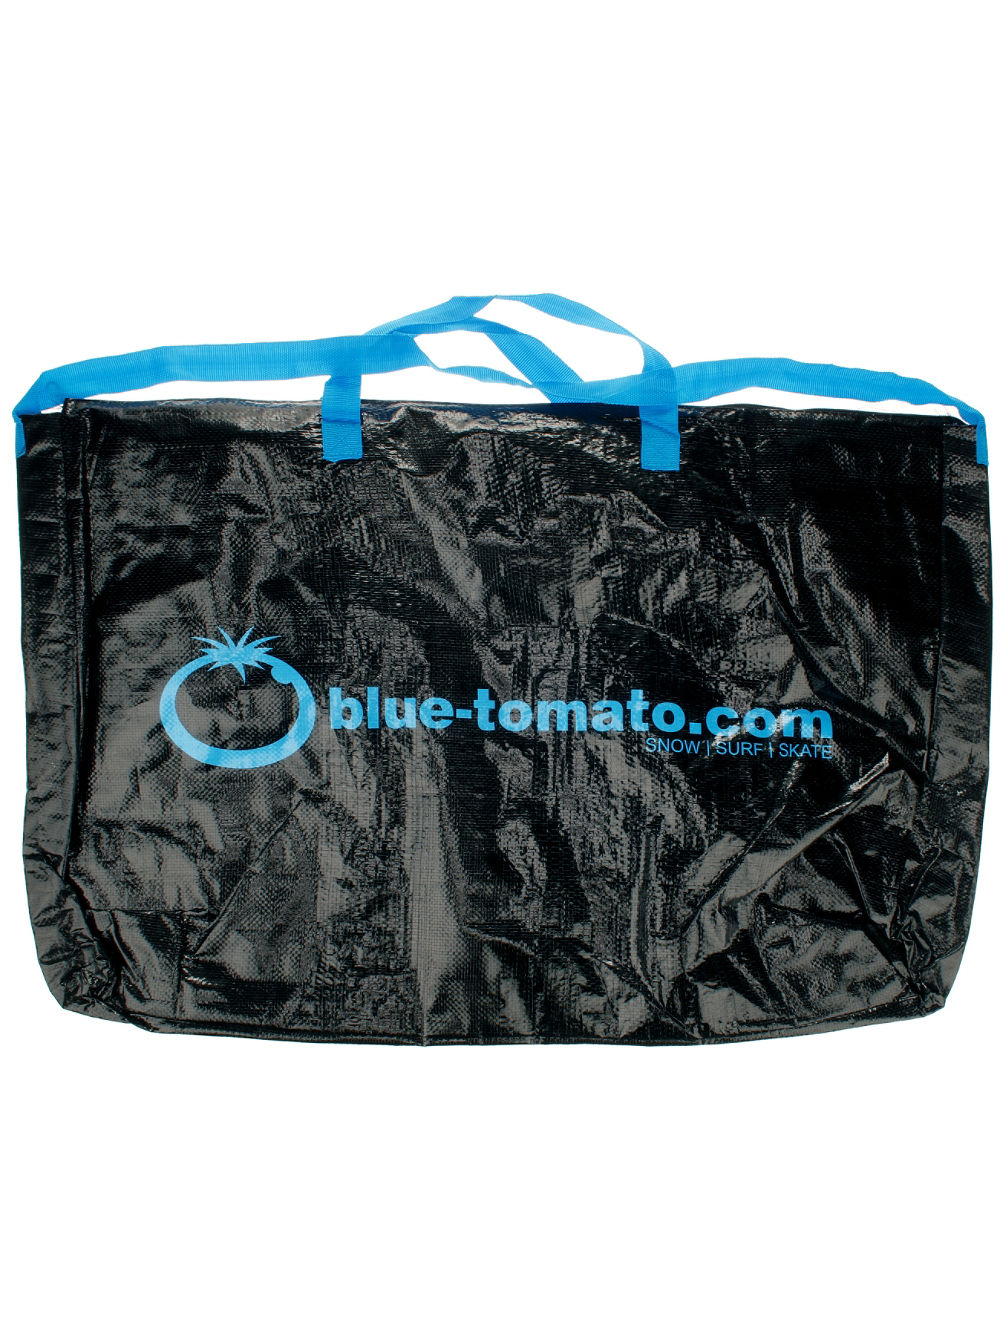 blue-tomato-bt-shopping-bag